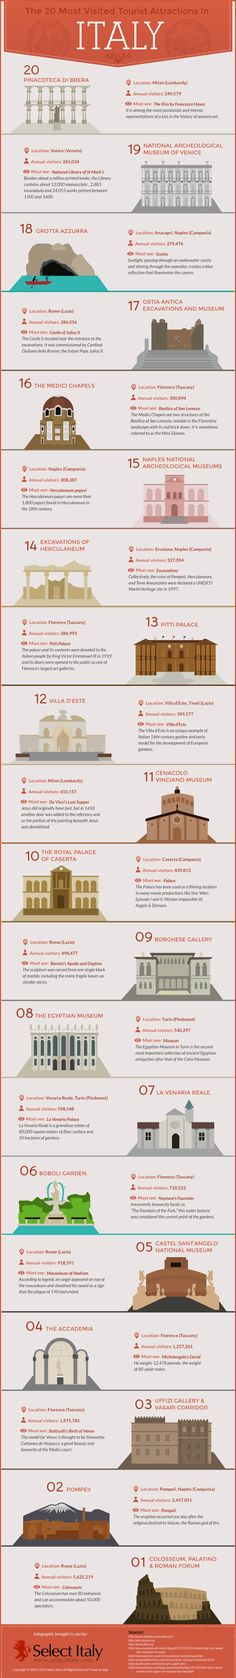 With the vast number of tourist attractions in Italy, it's interesting to see which ones are actually visited the most! Check out Select Italy's new infographic. Which is your favorite museums in #Italy?